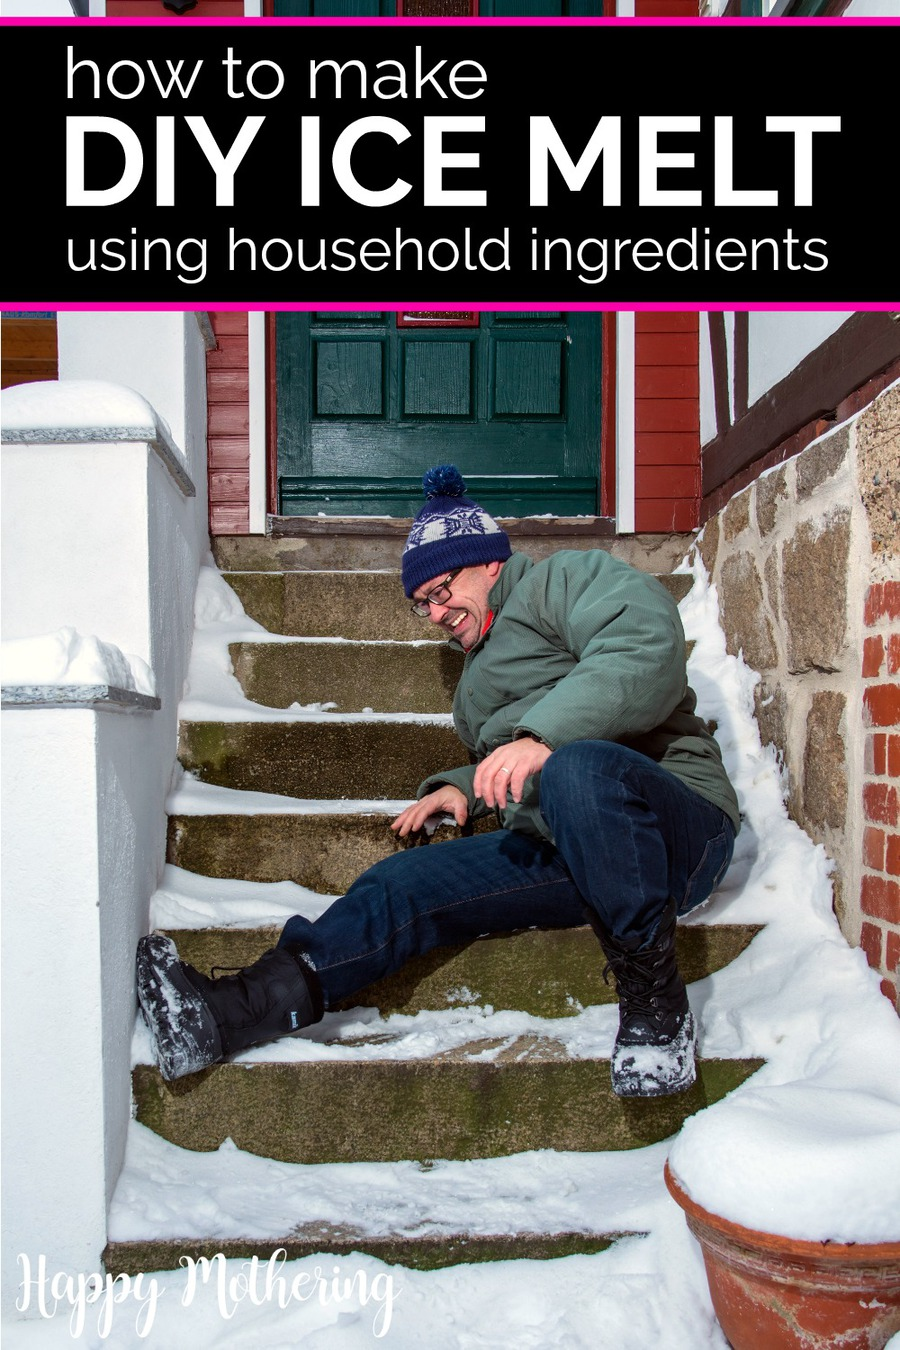 Winter means icy sidewalks and driveways that need to be cleared. Learn how to make your very own DIY ice melt using common household ingredients! This homemade formula is safe and non-toxic, so it's great for families!Winter means icy sidewalks and driveways that need to be cleared. Learn how to make your very own DIY ice melt using common household ingredients! This homemade formula is safe and non-toxic, so it's great for families!